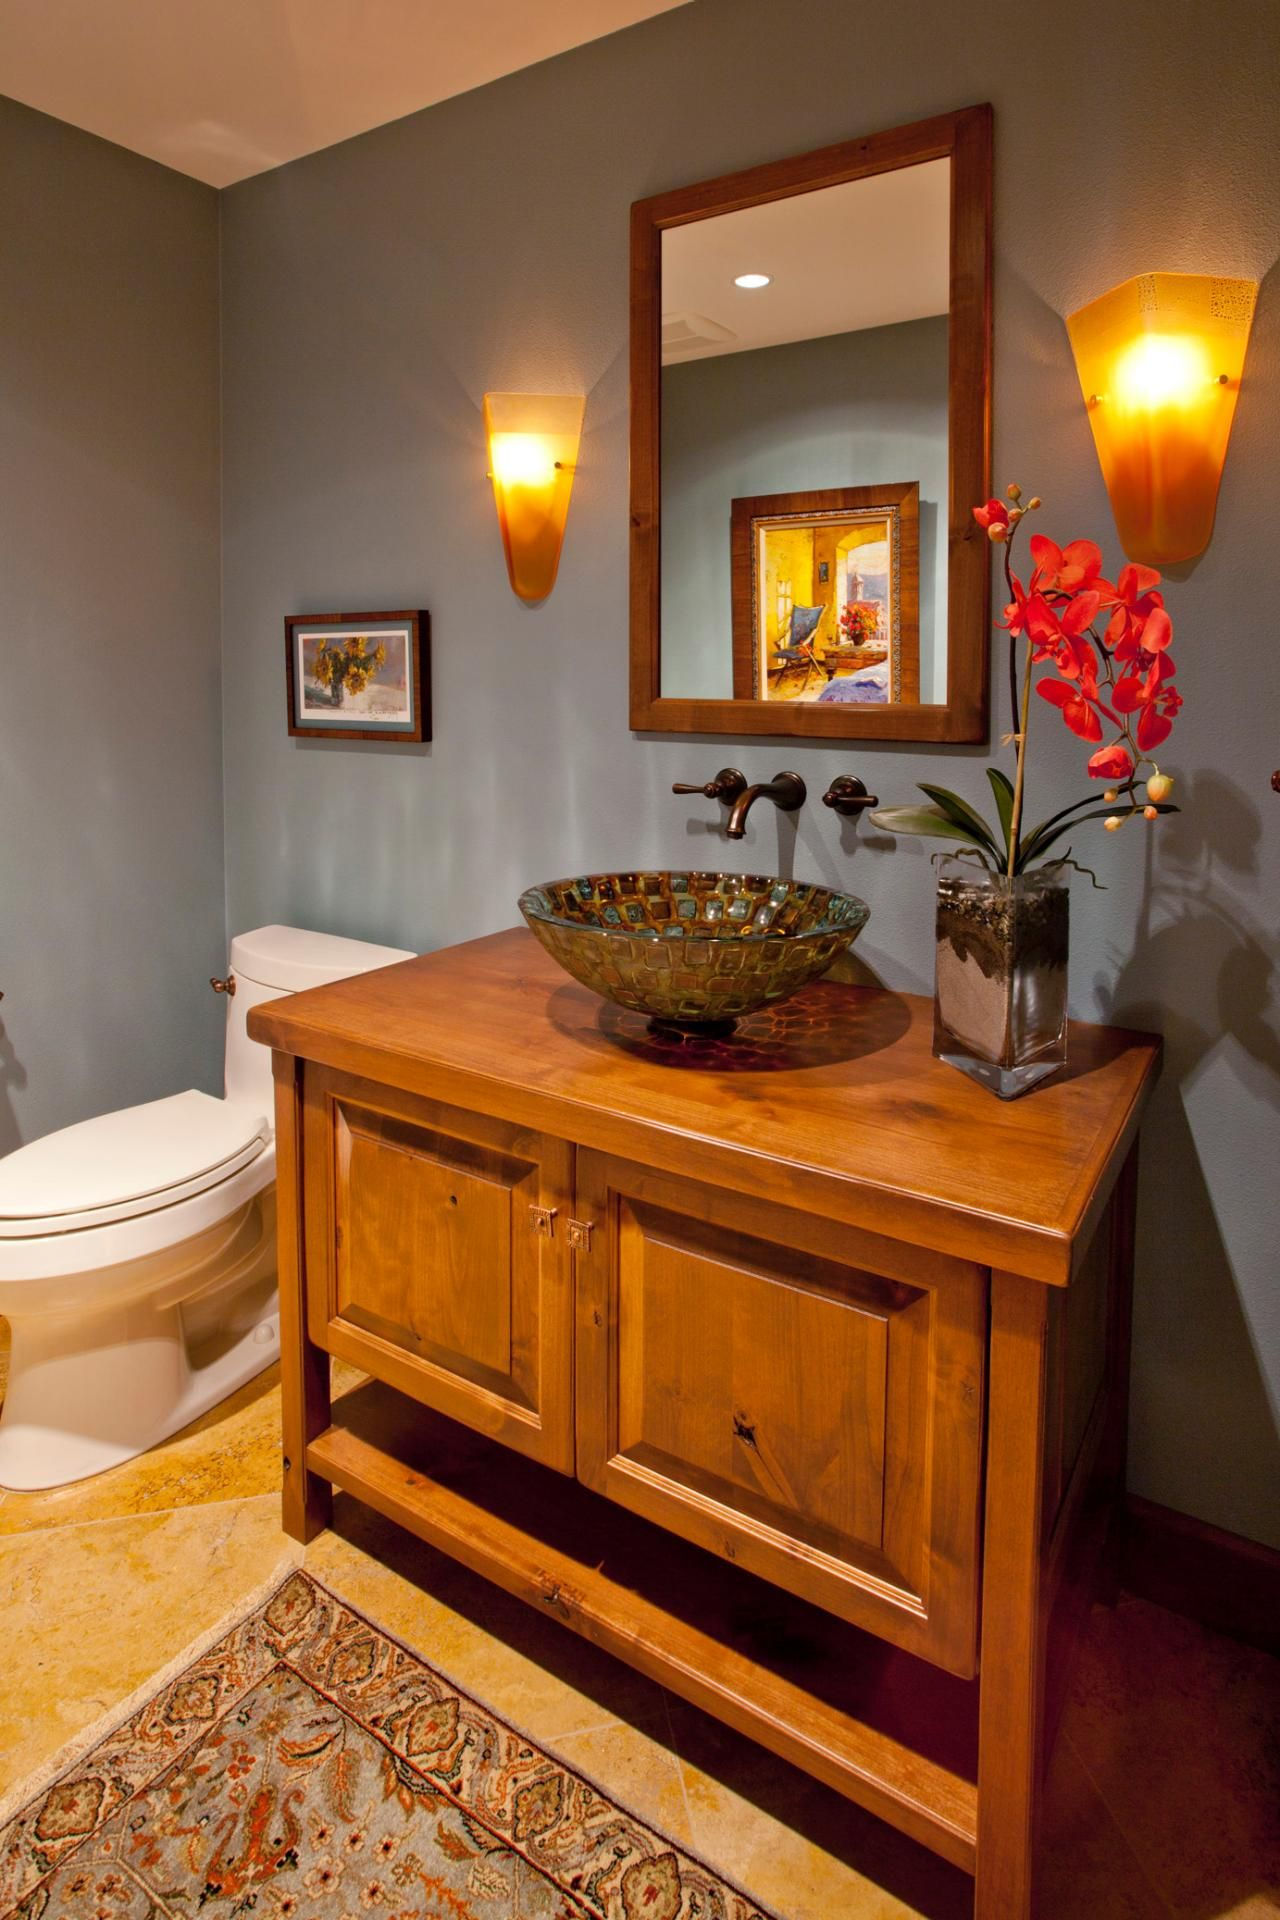 22 Eclectic Ideas Of Bathroom Wall Decor: The Warm, Low Light And Gray Walls In This Craftsman